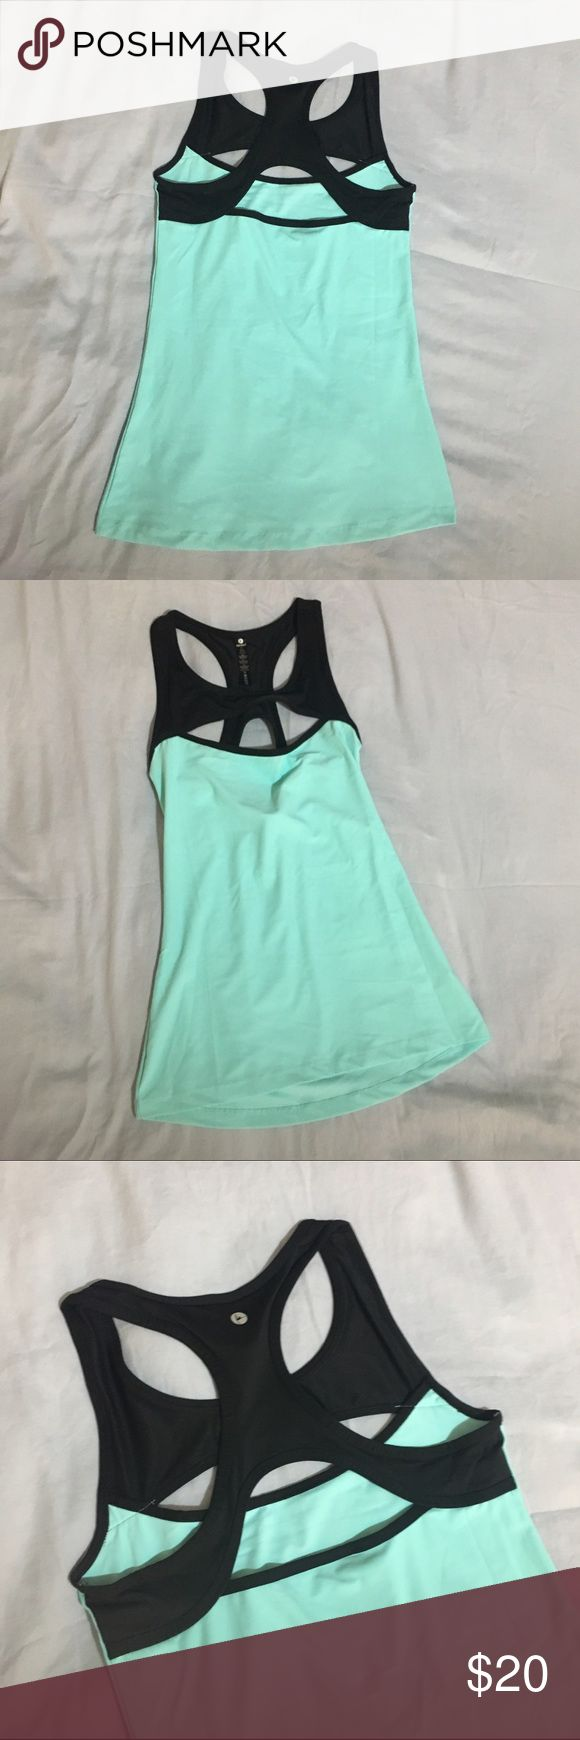 90 Degrees workout top Cute Teal and black workout top from 90 Degrees by Reflex. Size M. Never worn. Perfect condition. Reflex Tops Tank Tops